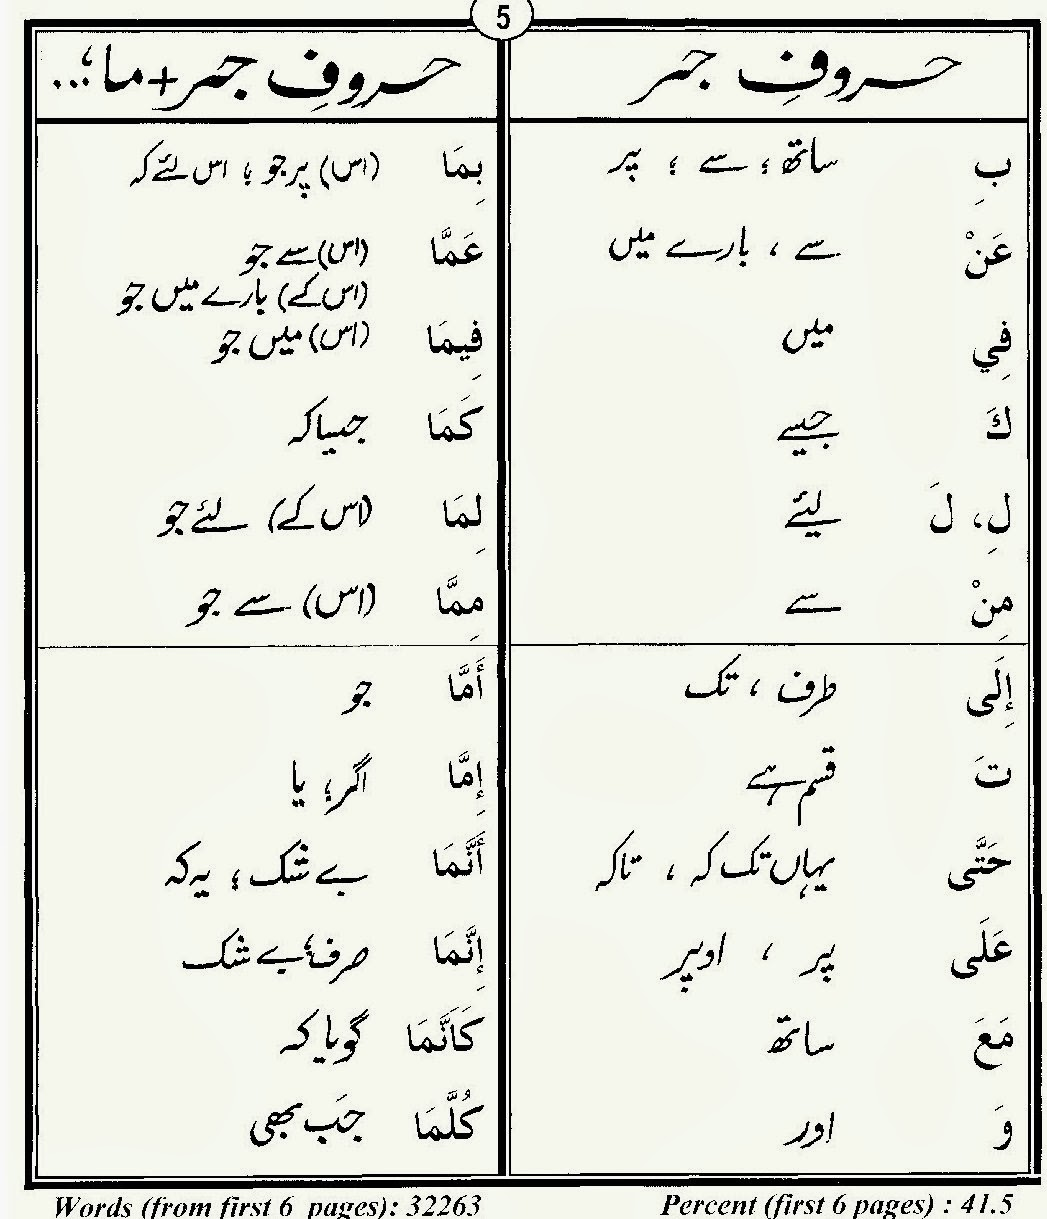 Lessons In Islam 80 Quran Words In Urdu